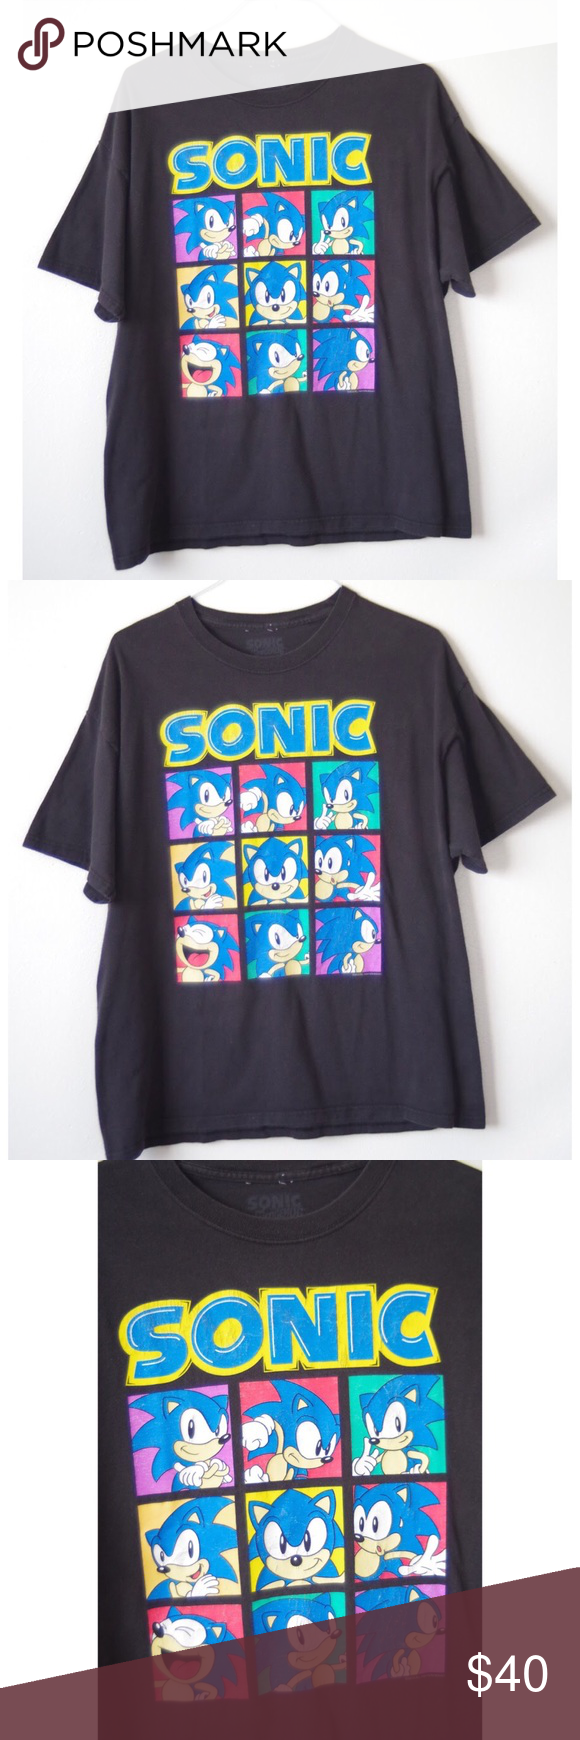 72434e21092b RARE VINTAGE SONIC THE HEDGEHOG CARTOON TSHIRT Size XLarge. Vintage. Sonic  the Hedgehog cartoon